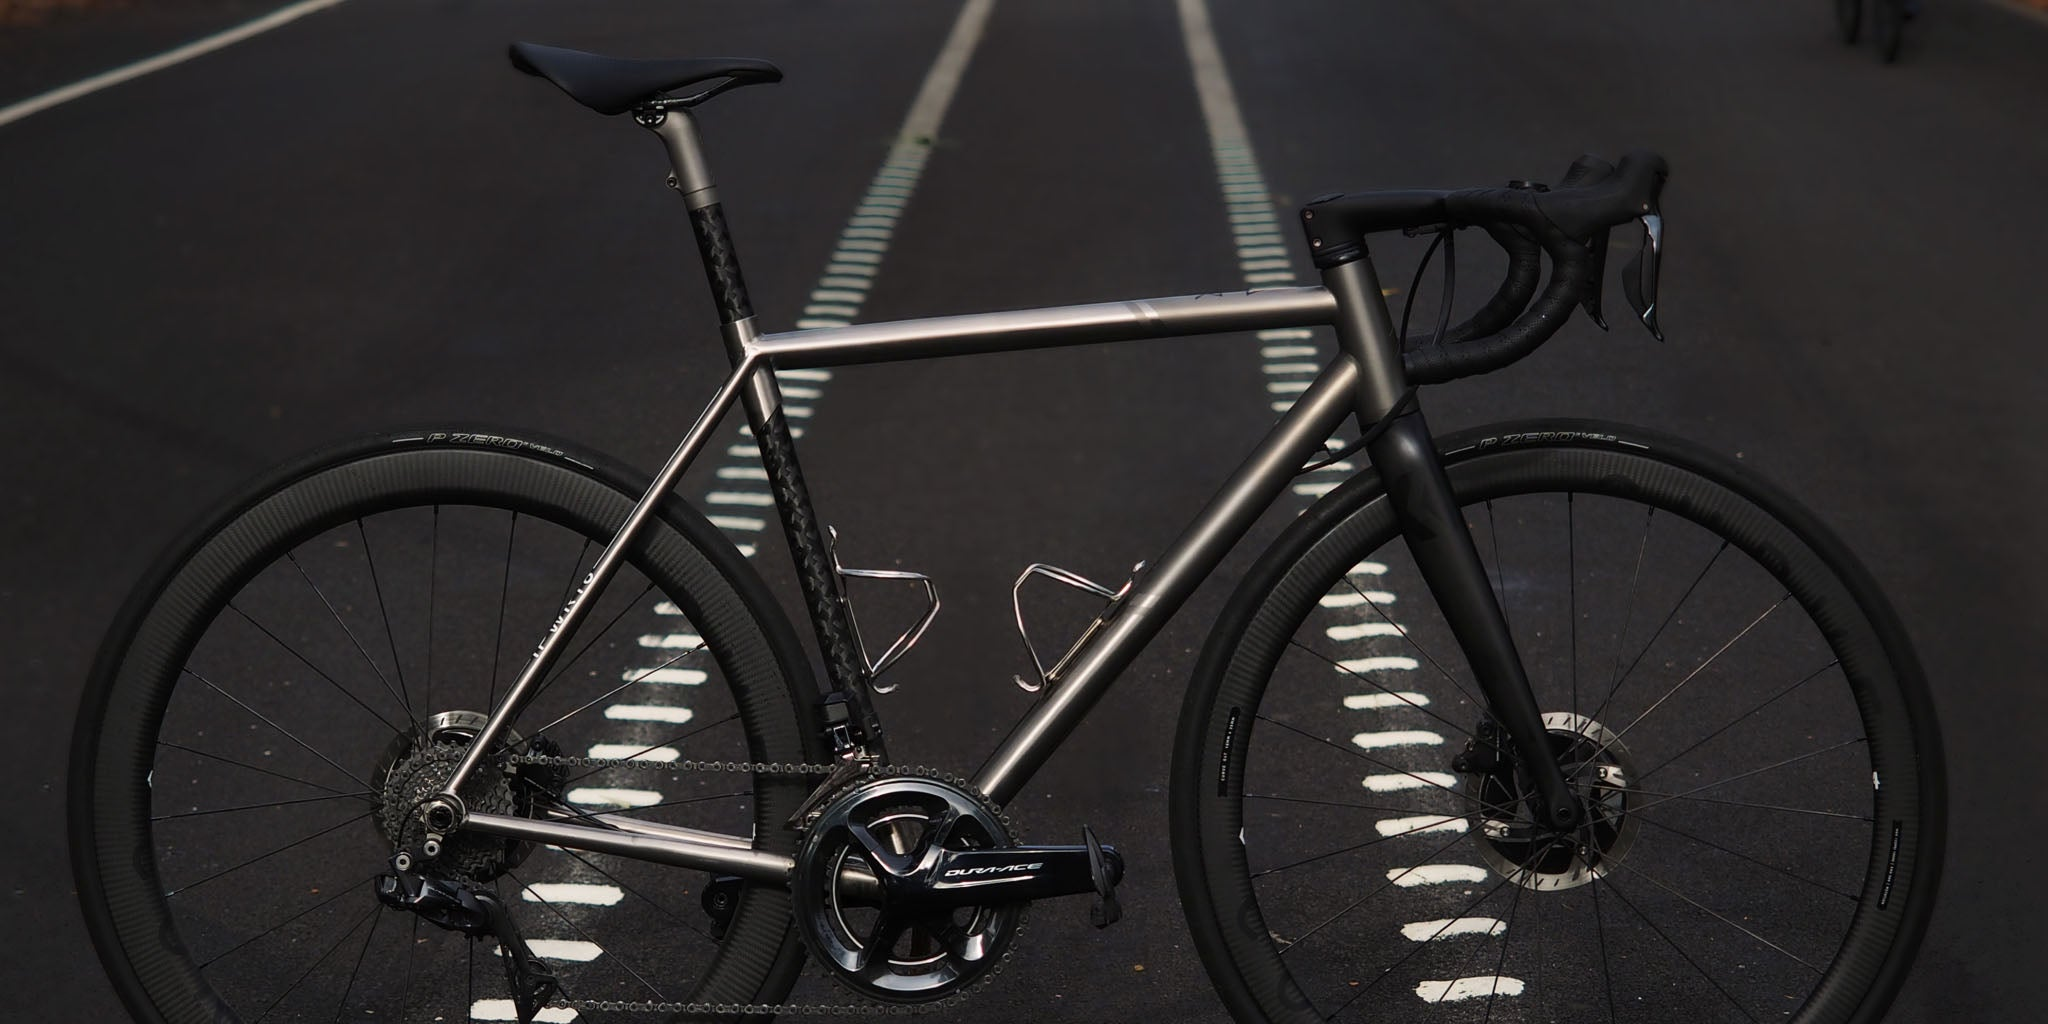 Curve Cycling | Titanium, Steel & Carbon Dream Bicycle Makers